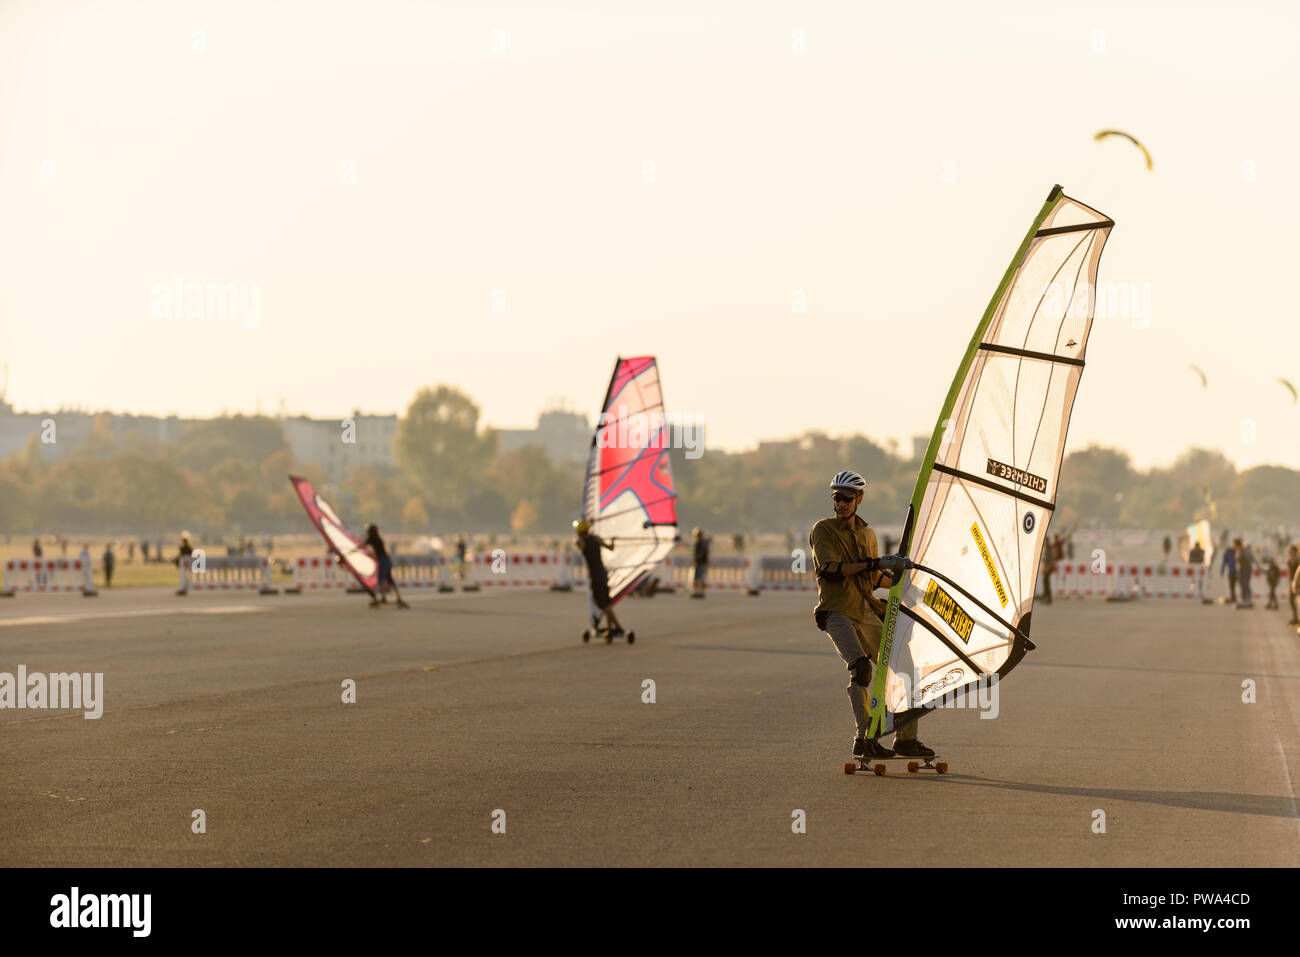 Wind skaters are at the Tempelhofer field. The good weather in October brings many visitors to the park at the former Tempelhof Airport. - Stock Image